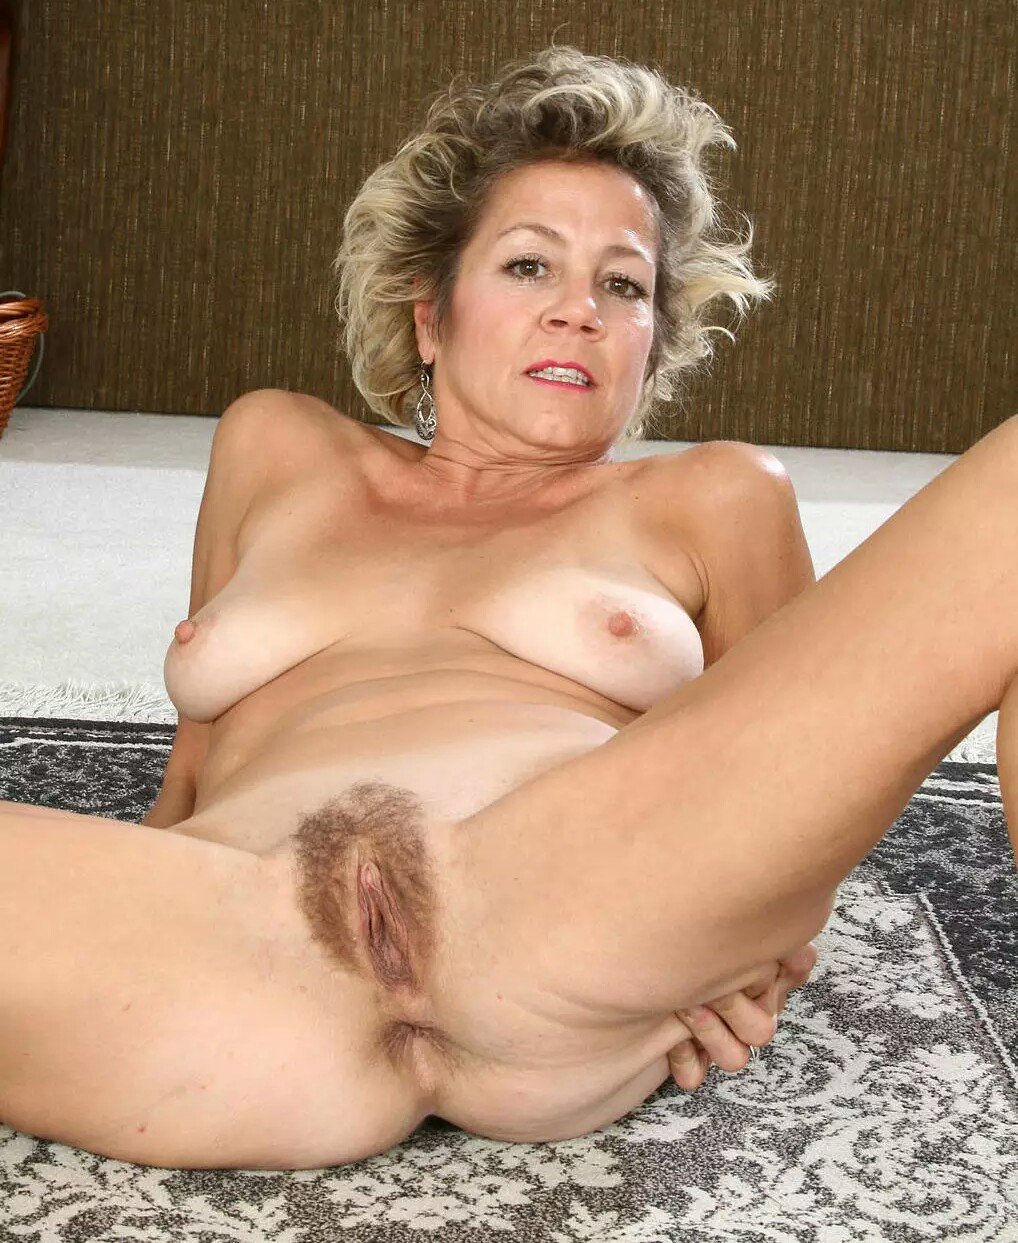 Old woman hairy pussy